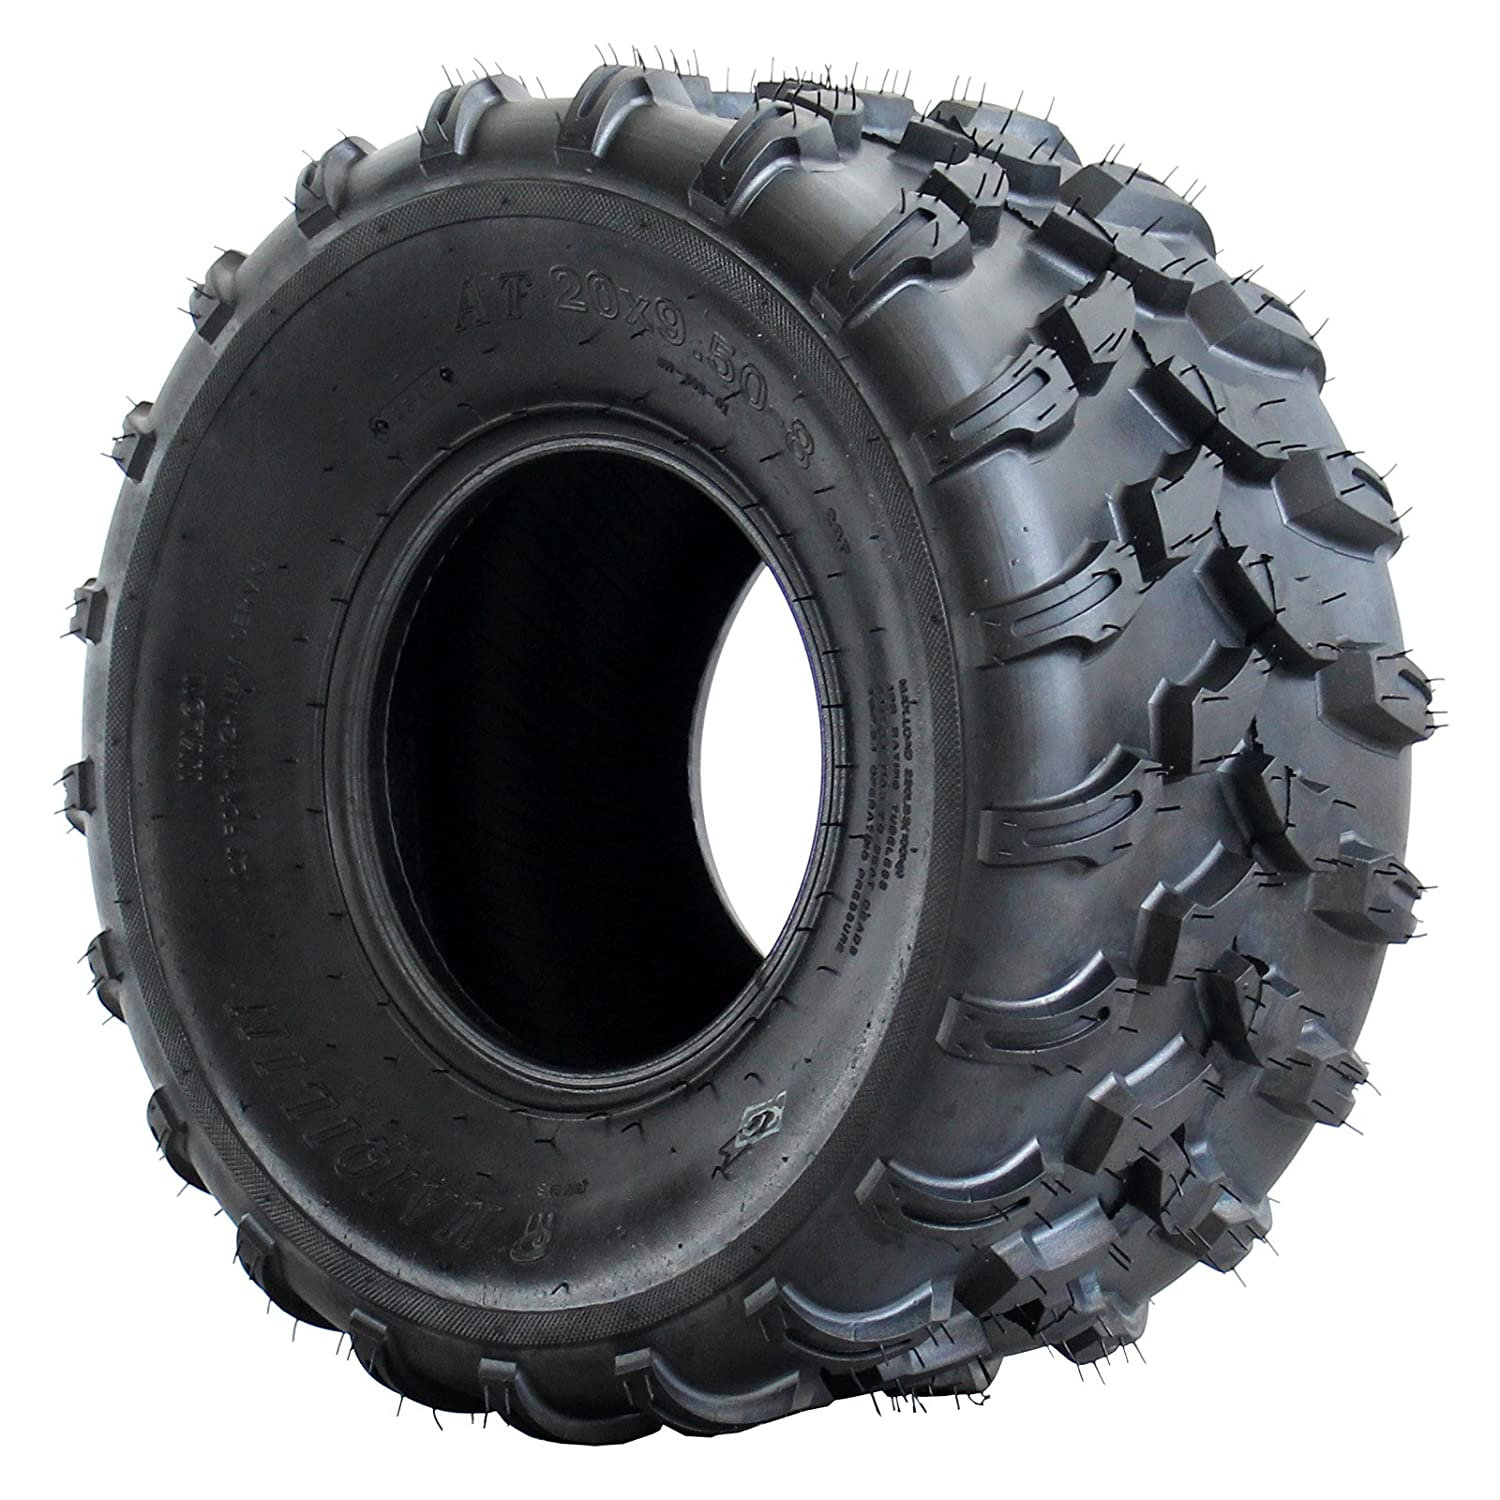 AR DONGFANG ATV Tires 19x7-8 Quad UTV Go Kart Tires ATV Tire 4PR Tubeless MOTOR HQ ATV tires:19x7-8